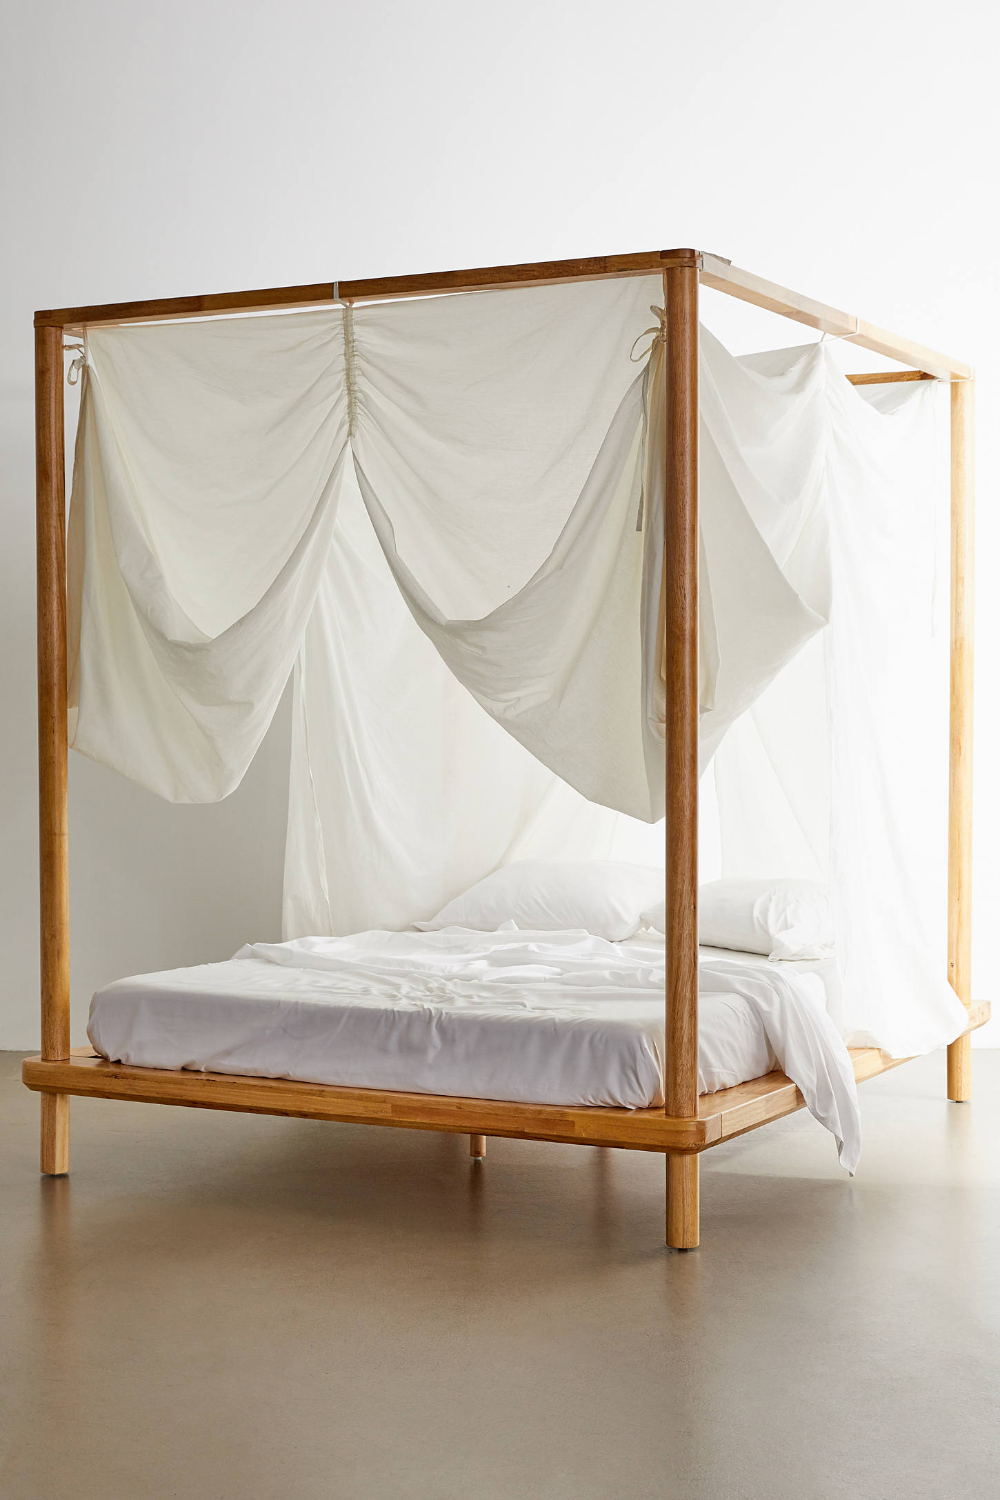 Tessie Canopy Urban Outfitters In 2020 Twin Canopy Bed Canopy